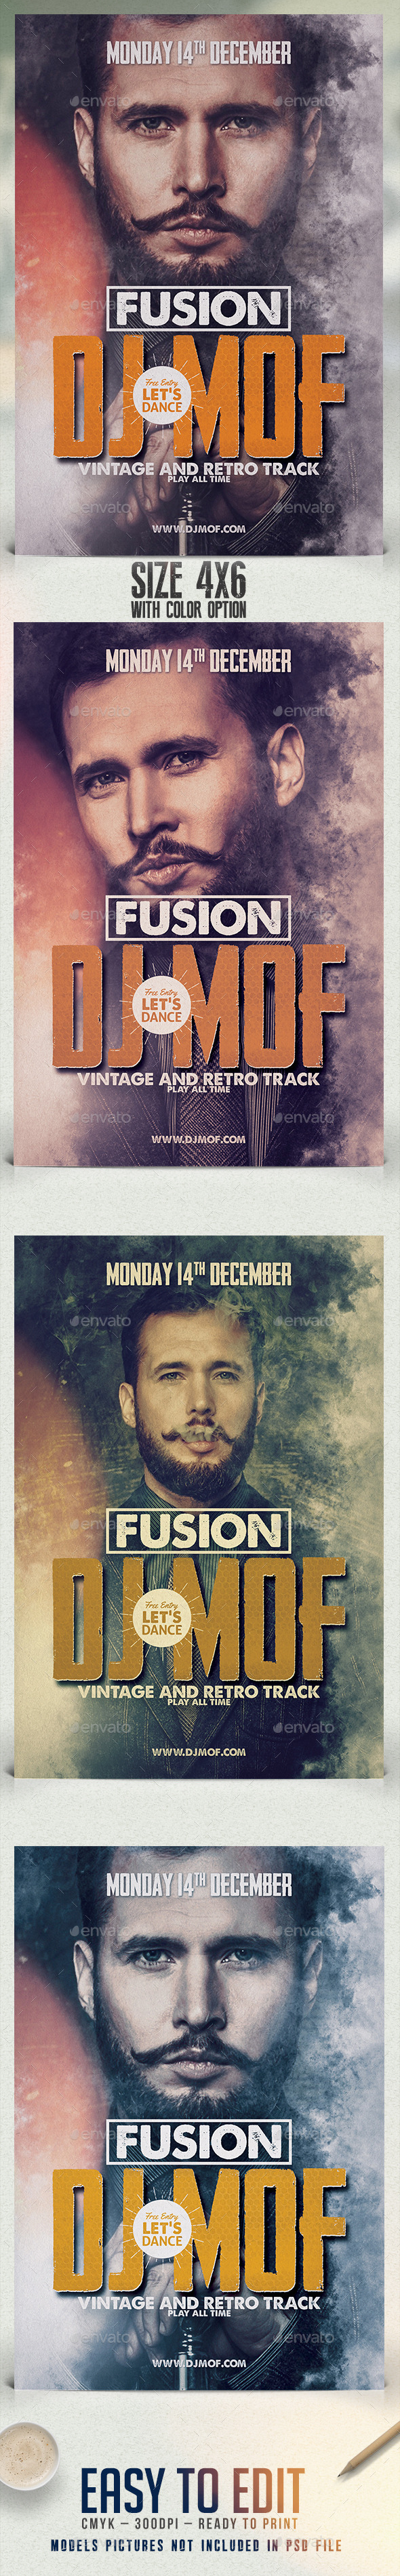 Fusion Dj Flyer Template - Clubs & Parties Events